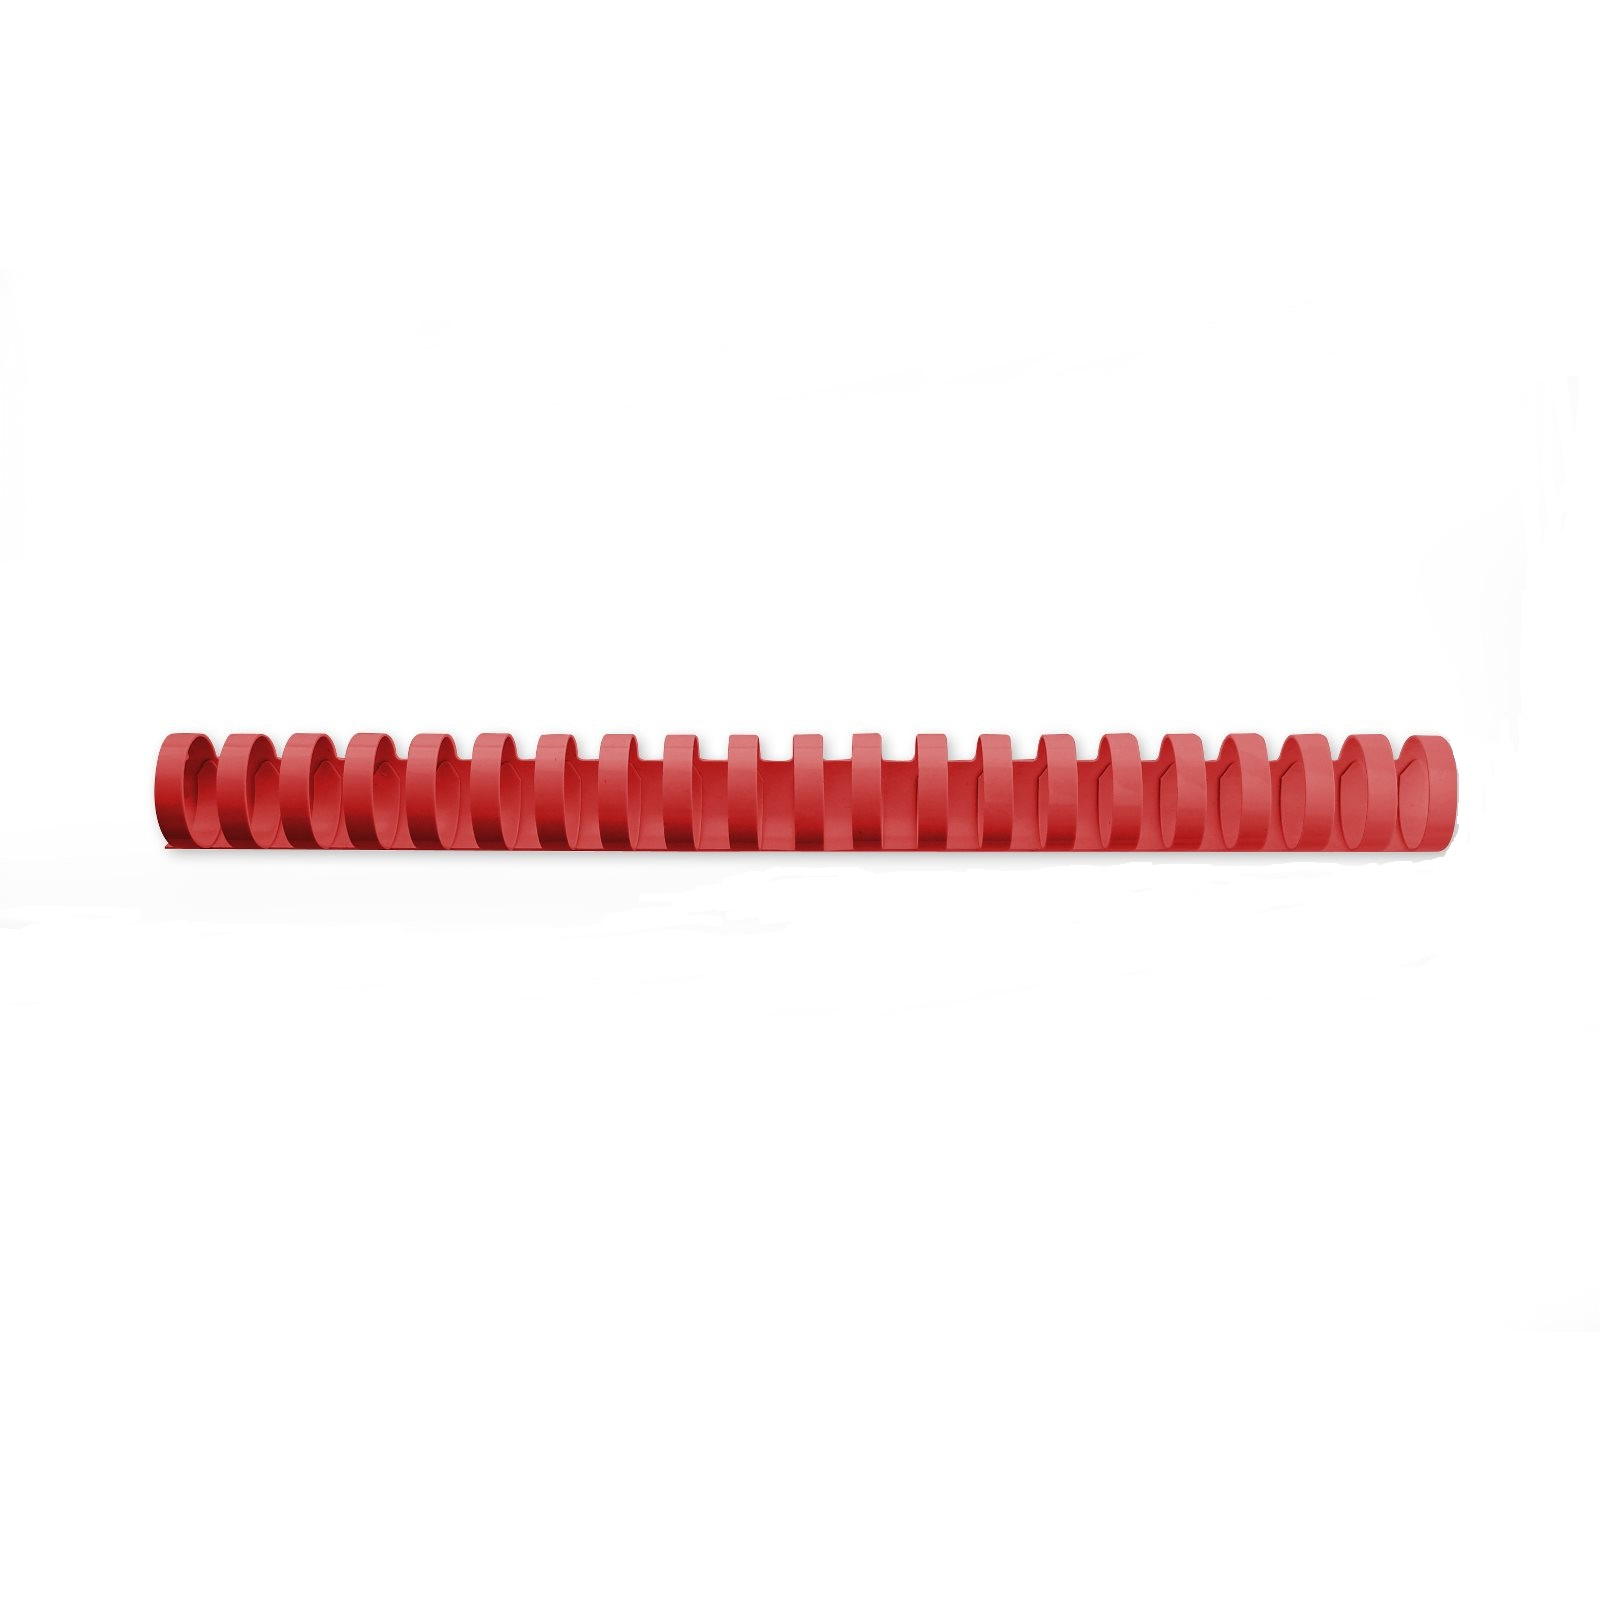 GBC Bind Combs 21 Ring A4 10mm RD PK100